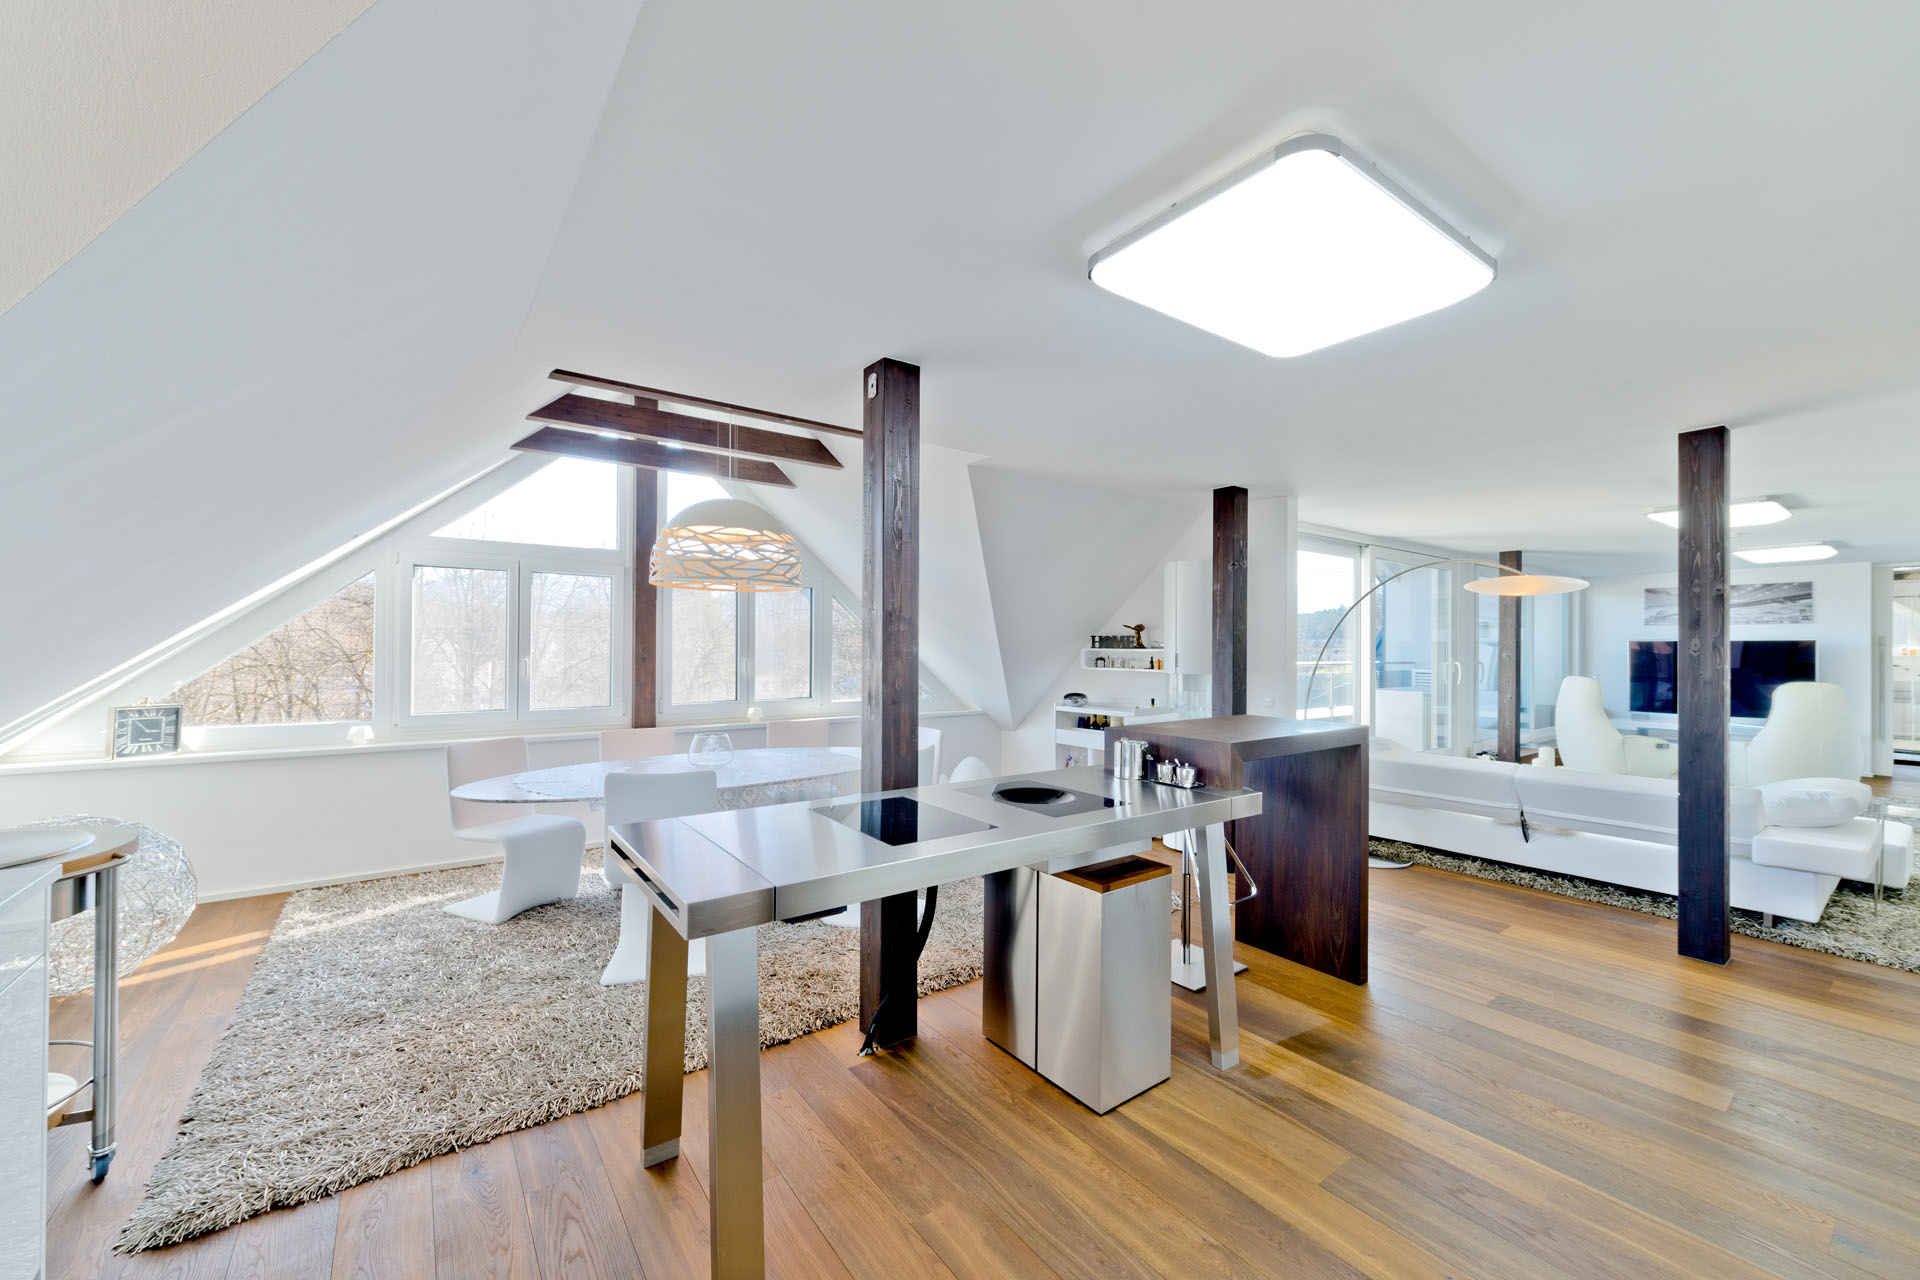 Extravagant and loft-style attic apartment in central location